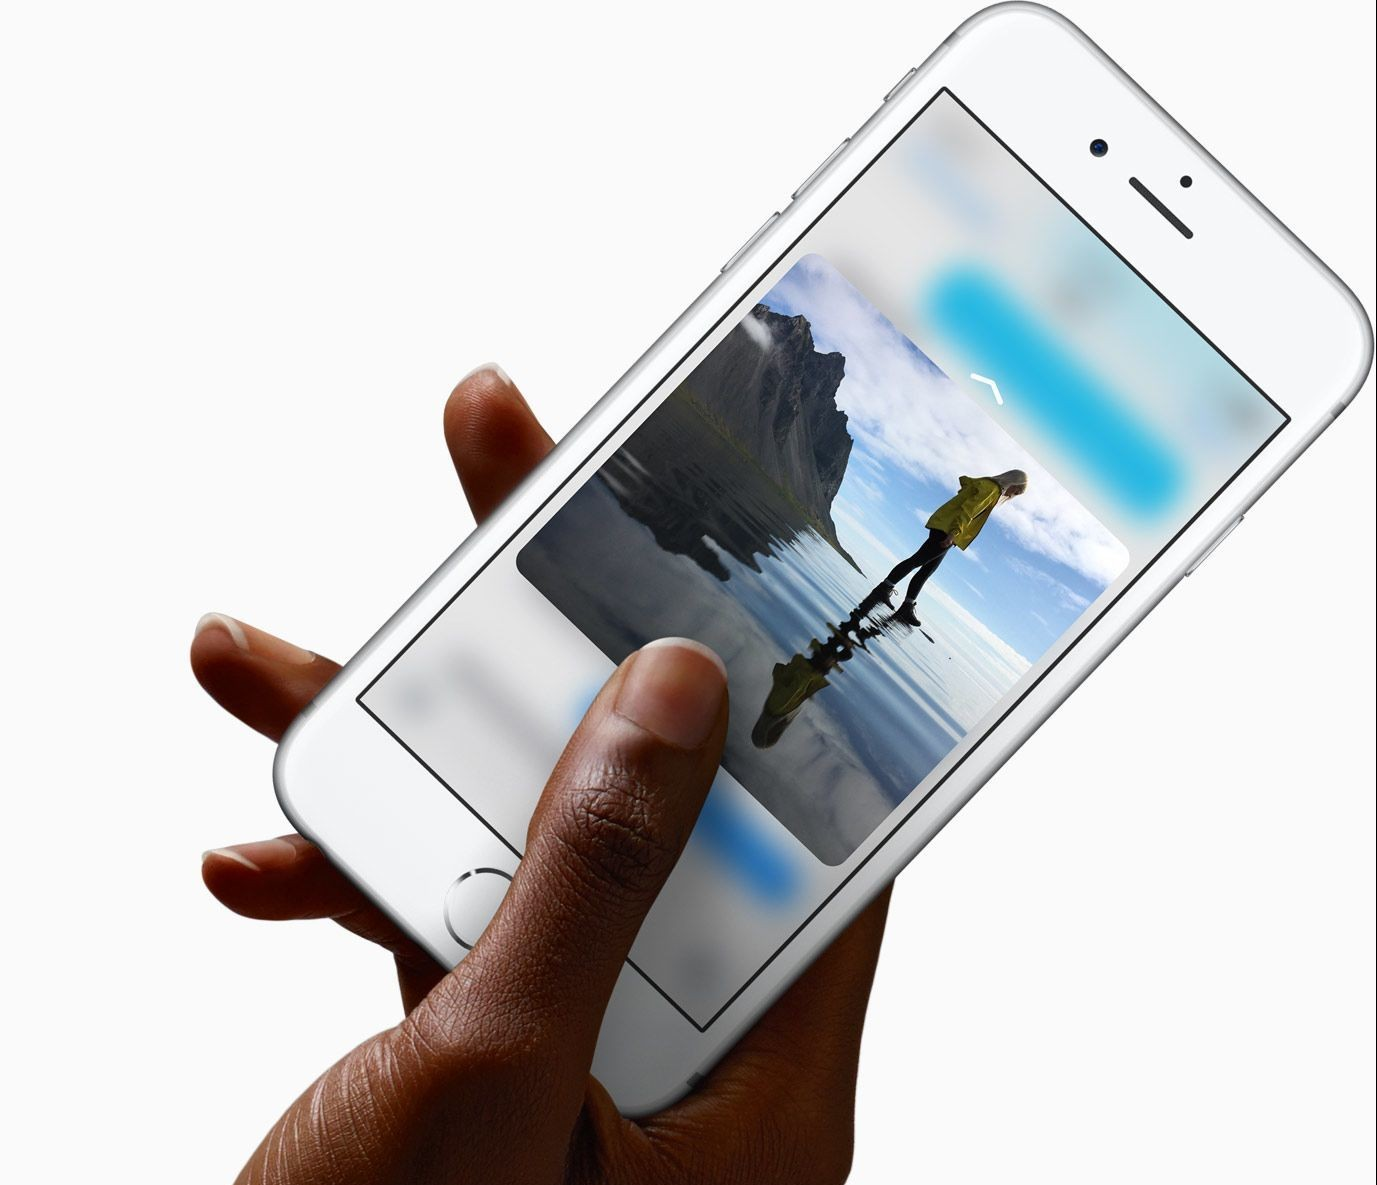 iphone-6s-3d-touch-090915